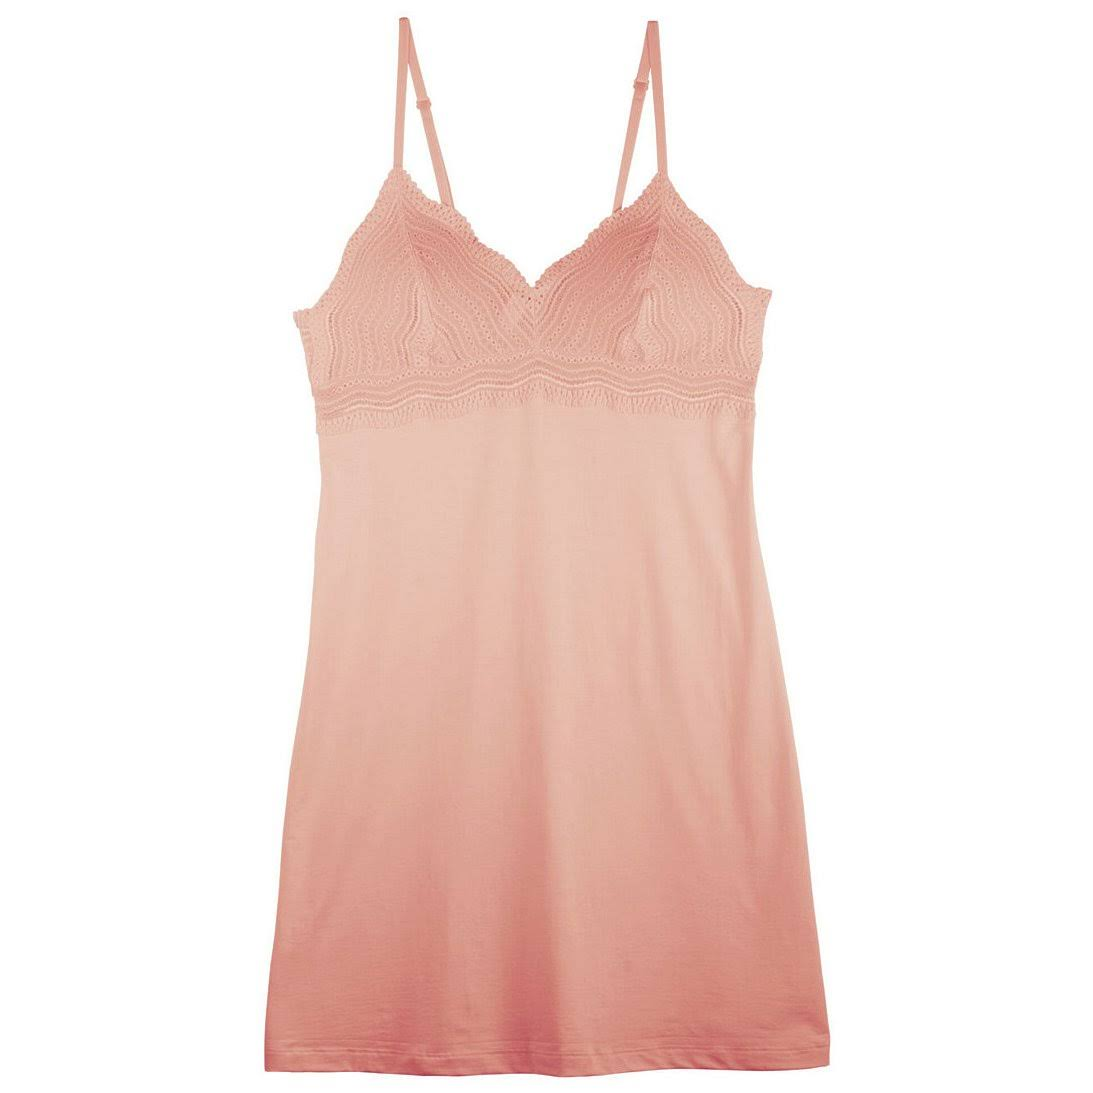 Babydoll Mauvelous Dolce Cosabella Cosabella Dolce wxq41w70Y